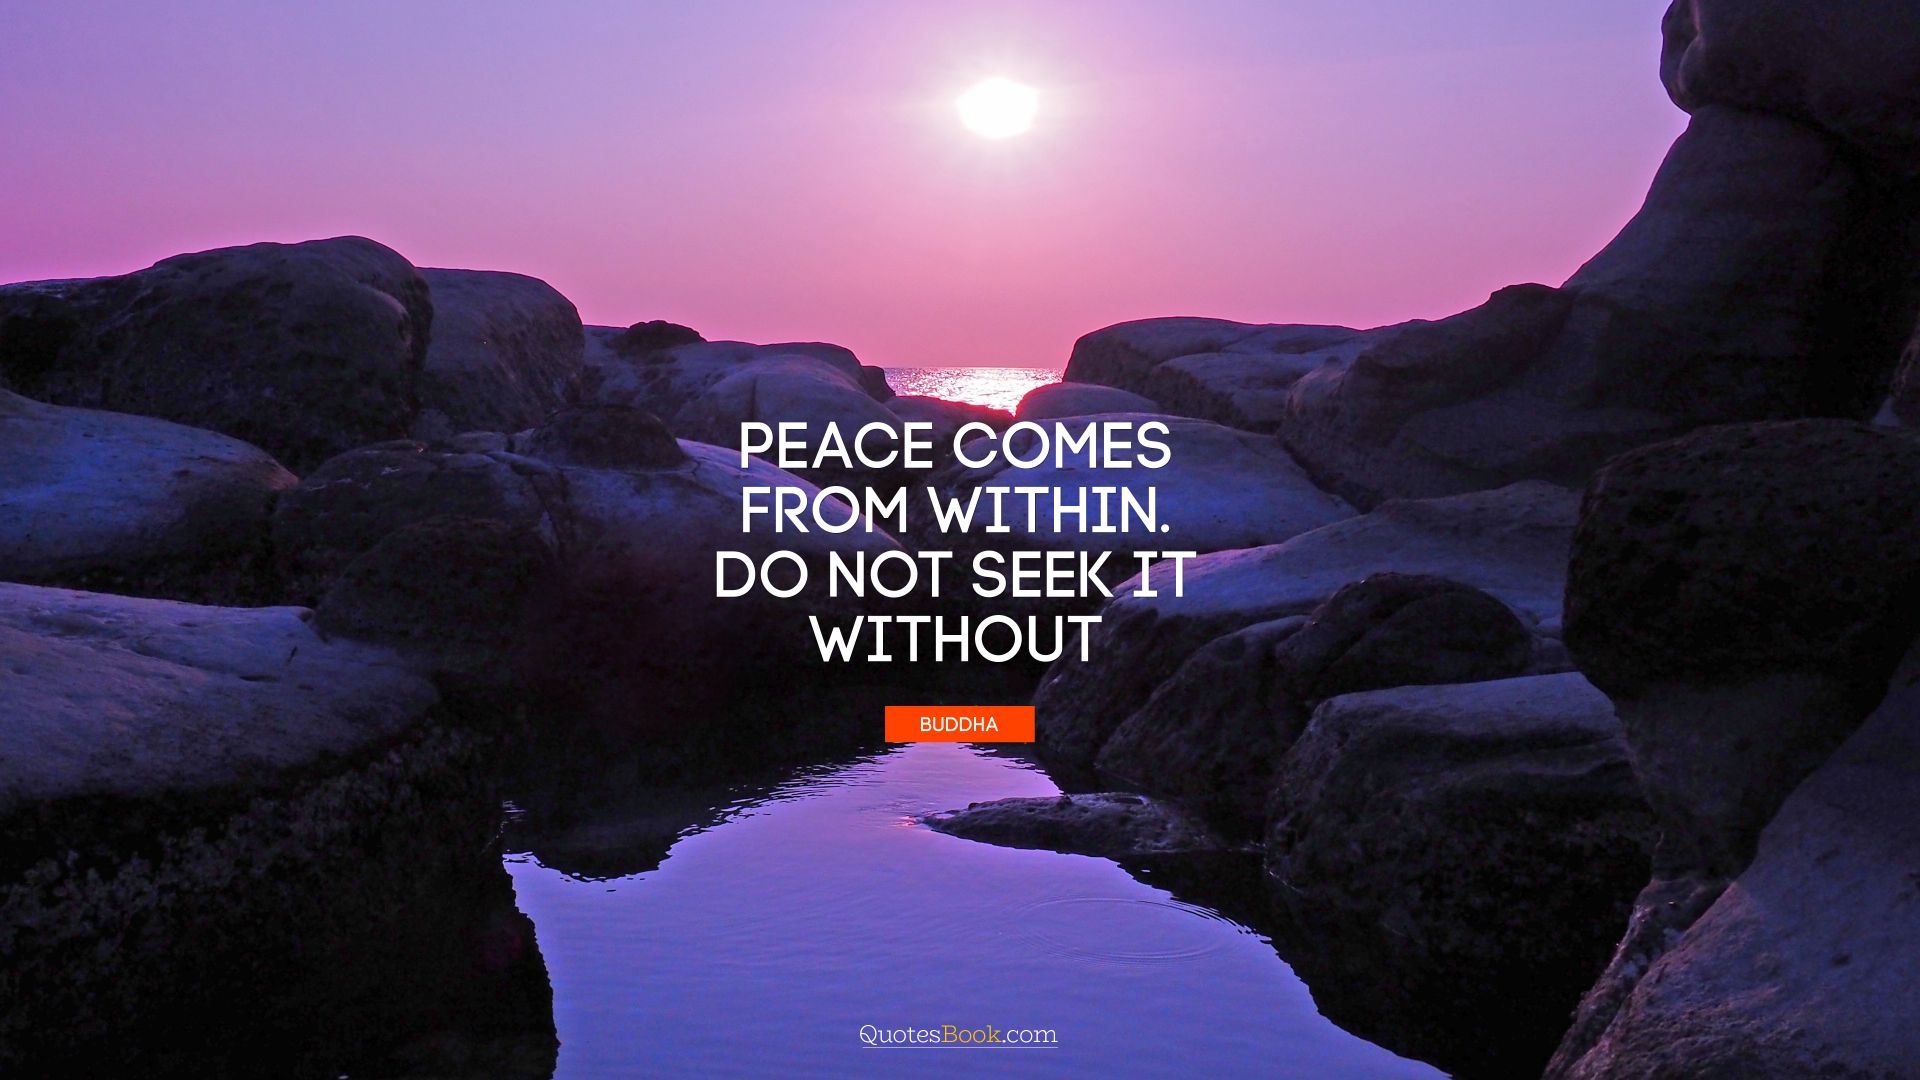 Peace comes from within. Do not seek it without. - Quote by Buddha